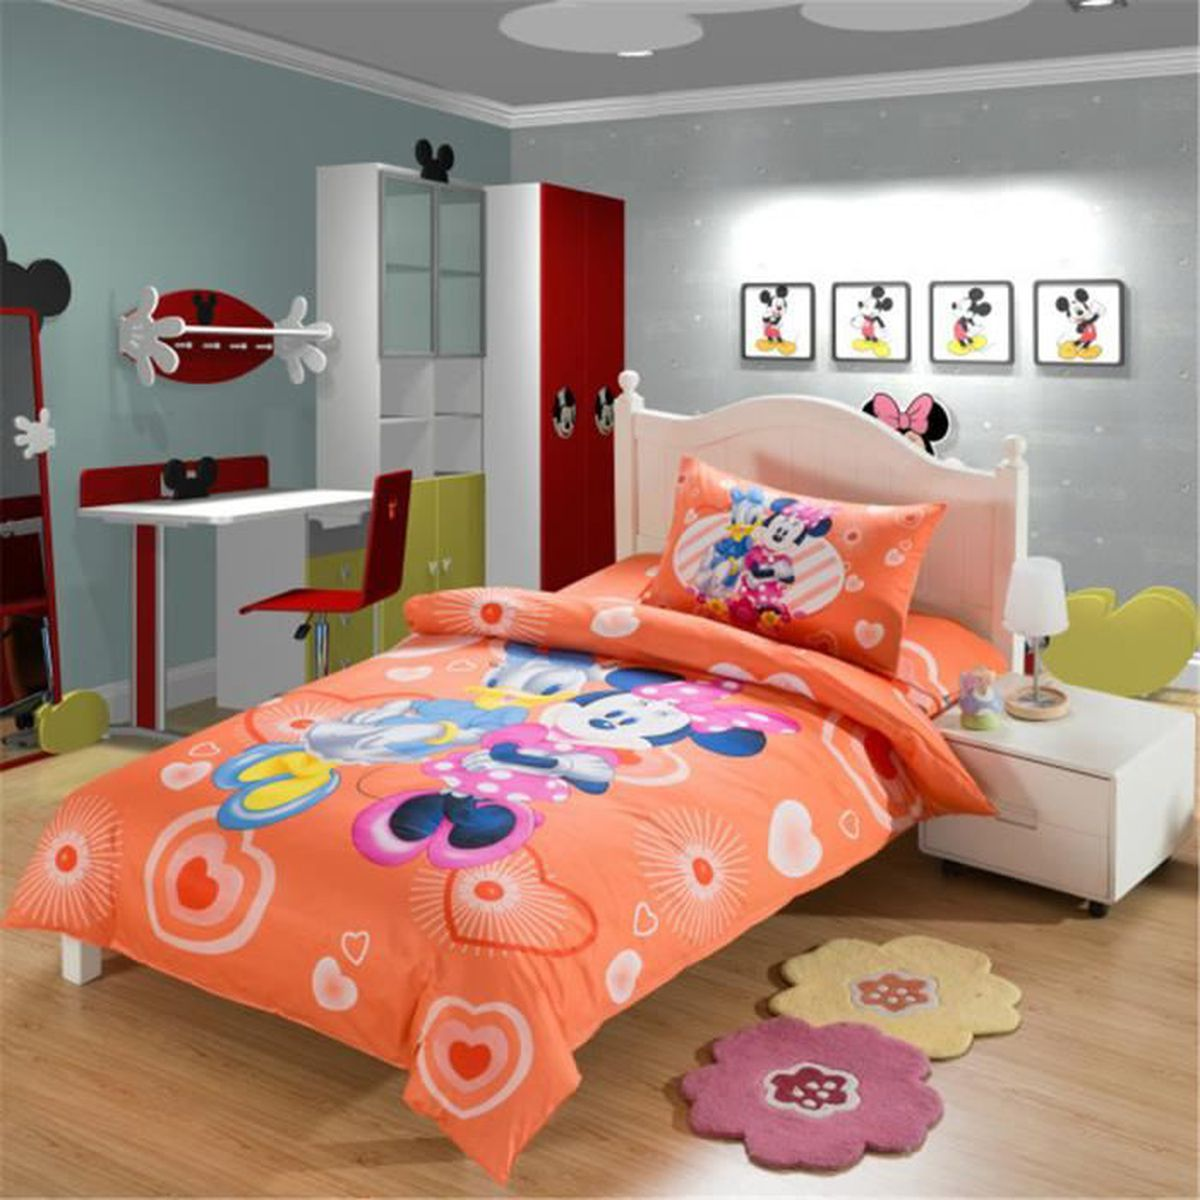 parure de couette parure de lit mickey mouse minnie donald duck enfant 100 coton 1 housse de. Black Bedroom Furniture Sets. Home Design Ideas